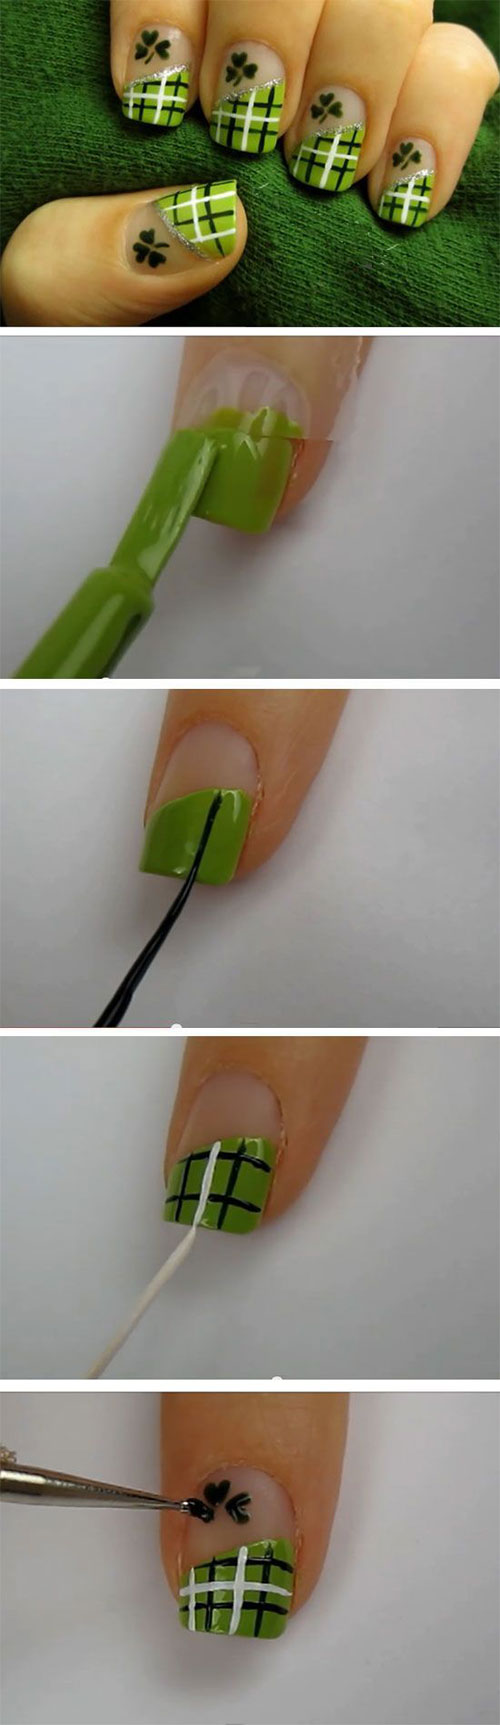 Easy-Simple-Thanksgiving-Nails-Tutorials-For-Beginners-2017-4